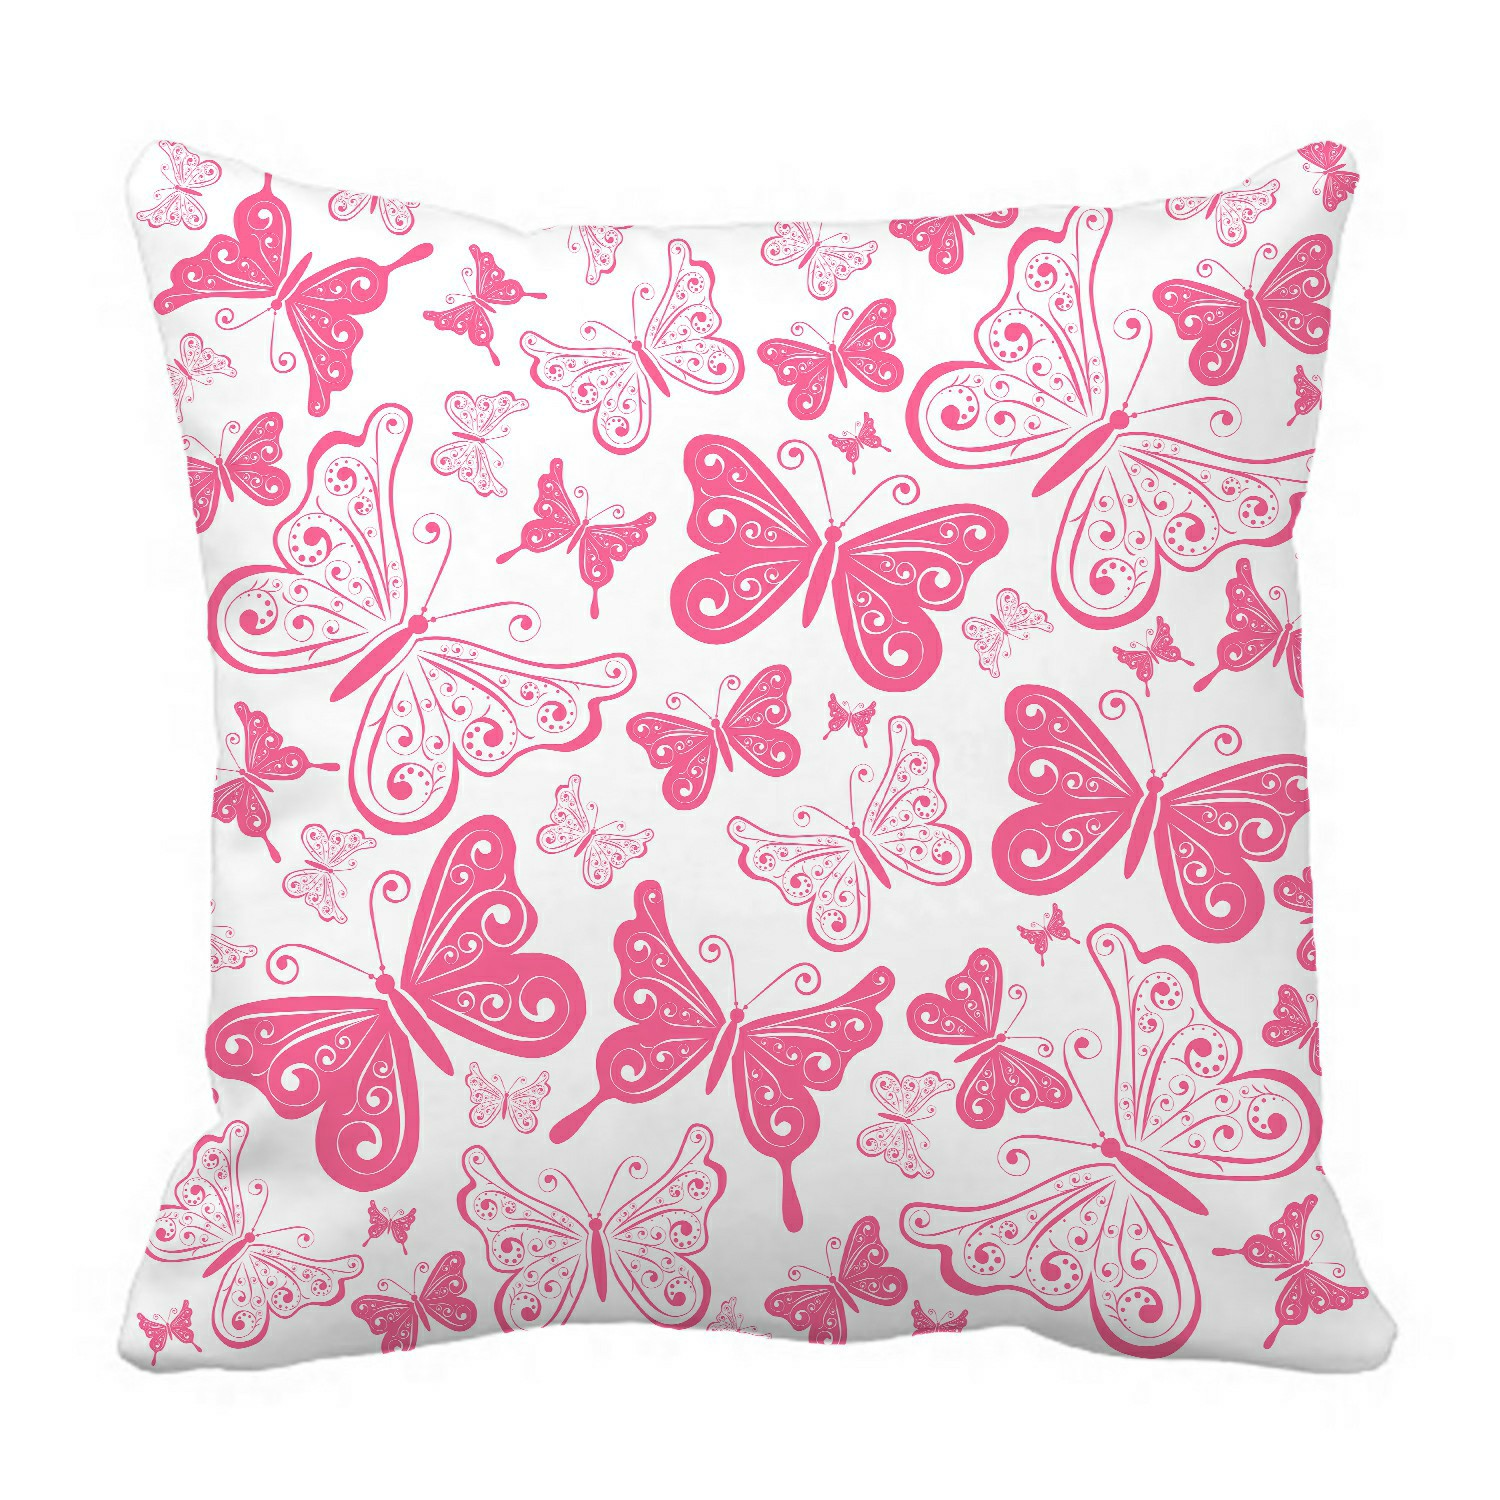 eczjnt pink butterfly pillow case pillow cover cushion cover 16x16 inch